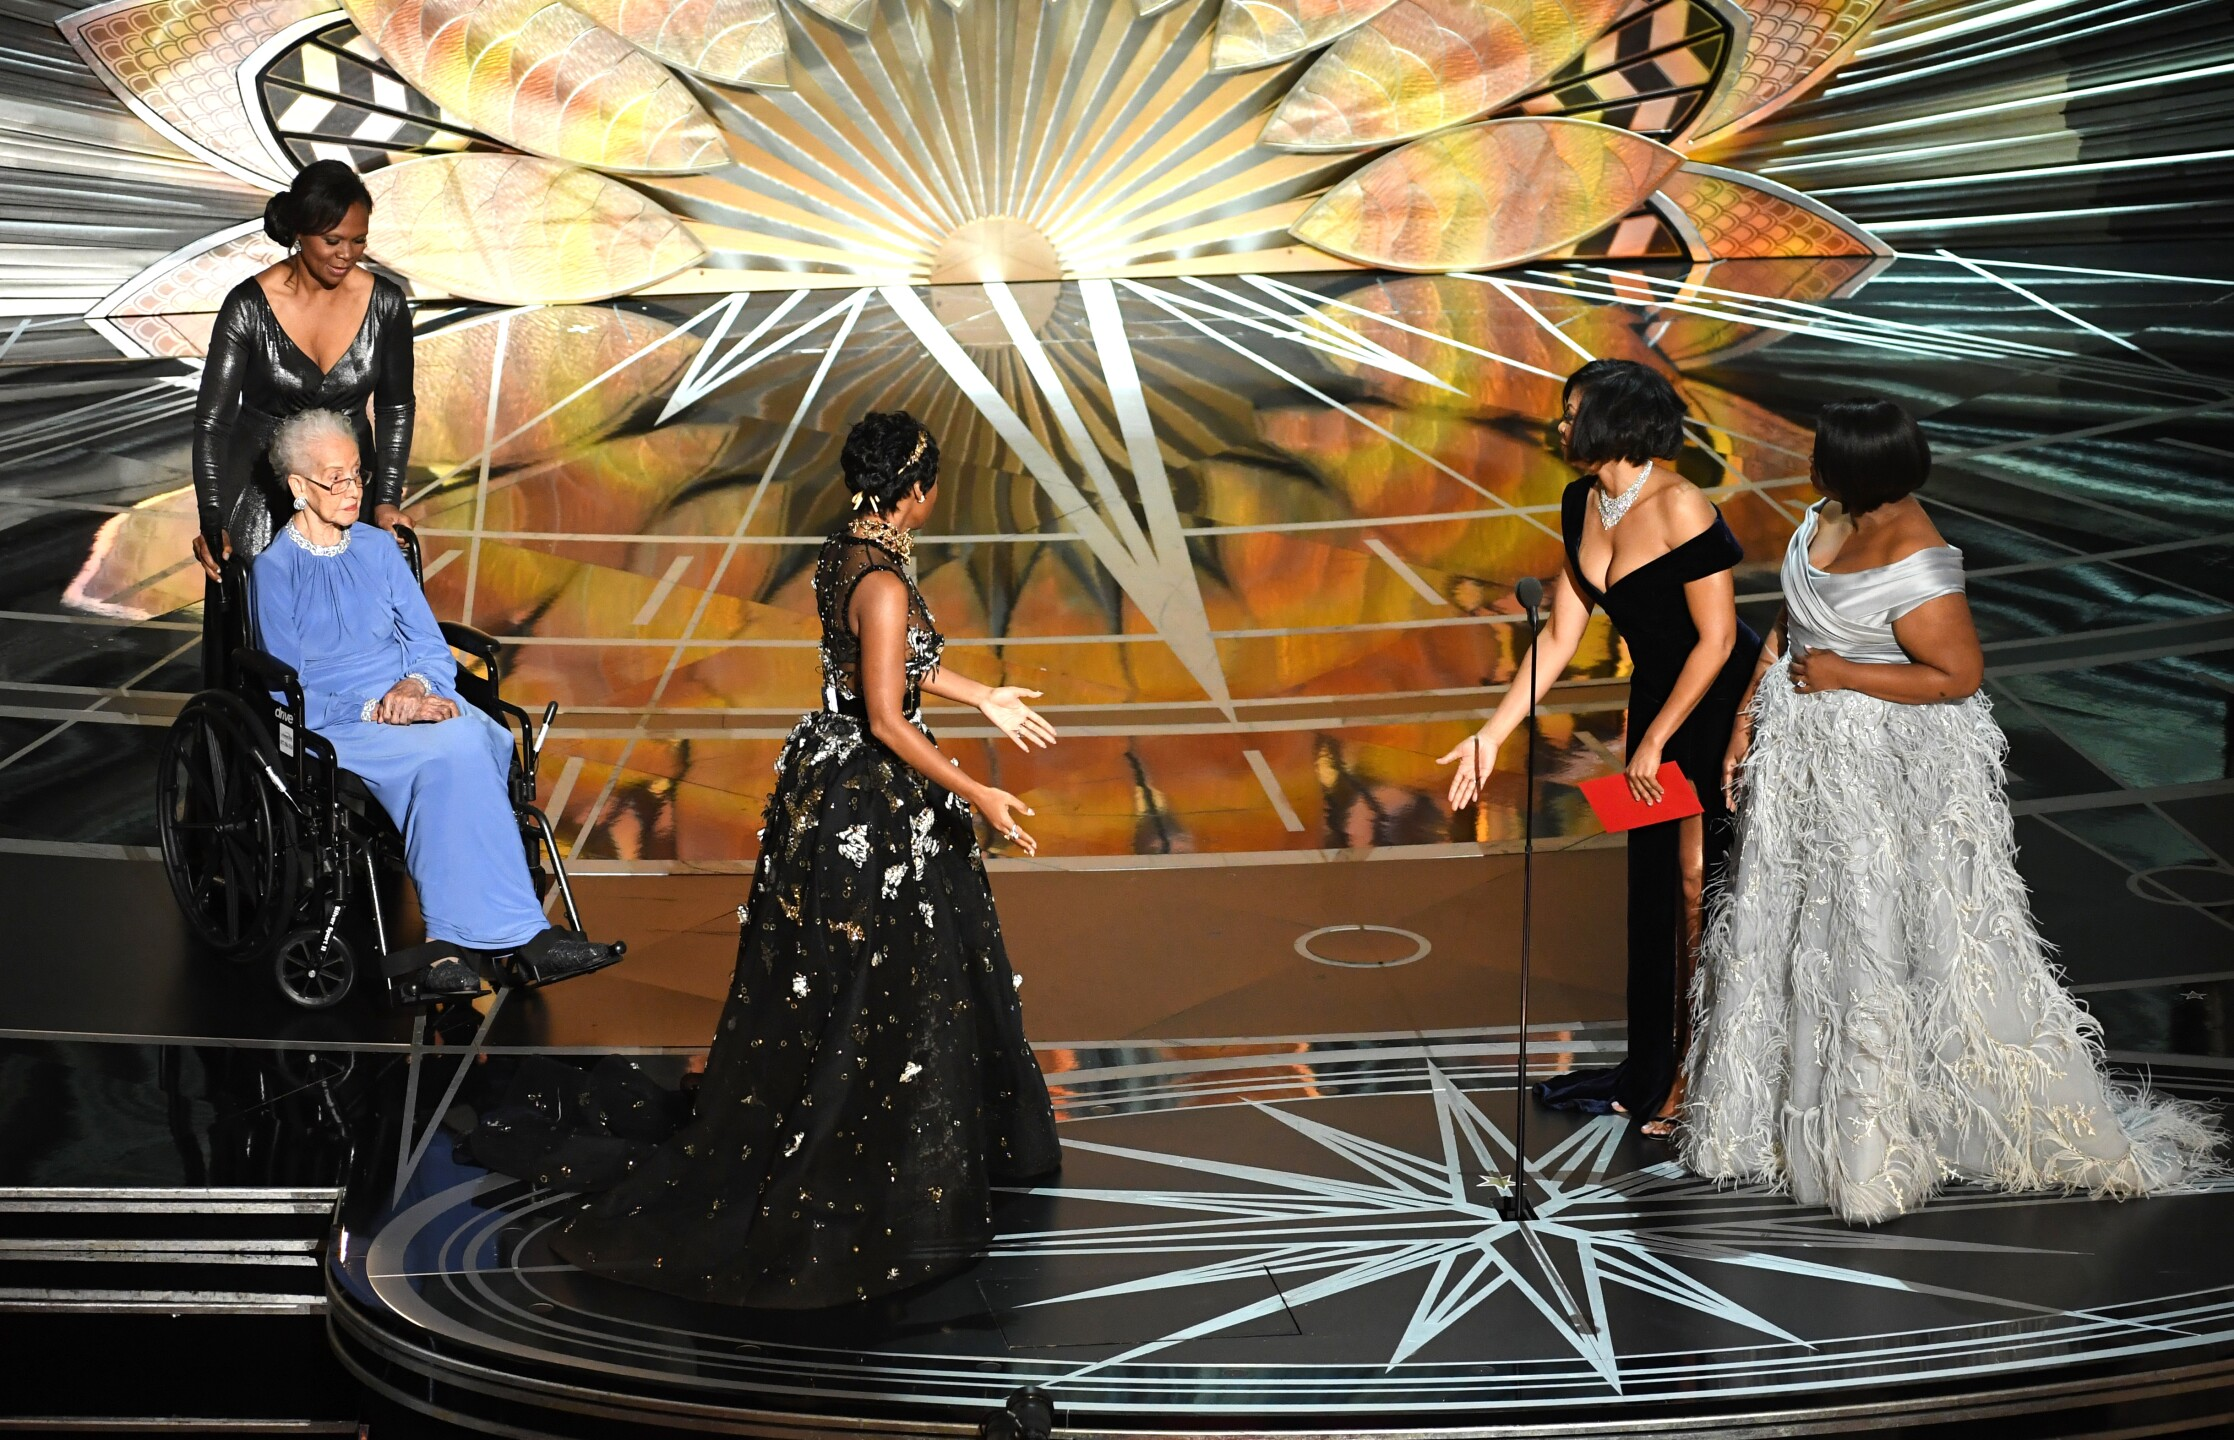 Photos: Hampton woman featured in 'Hidden Figures' honored at theOscars